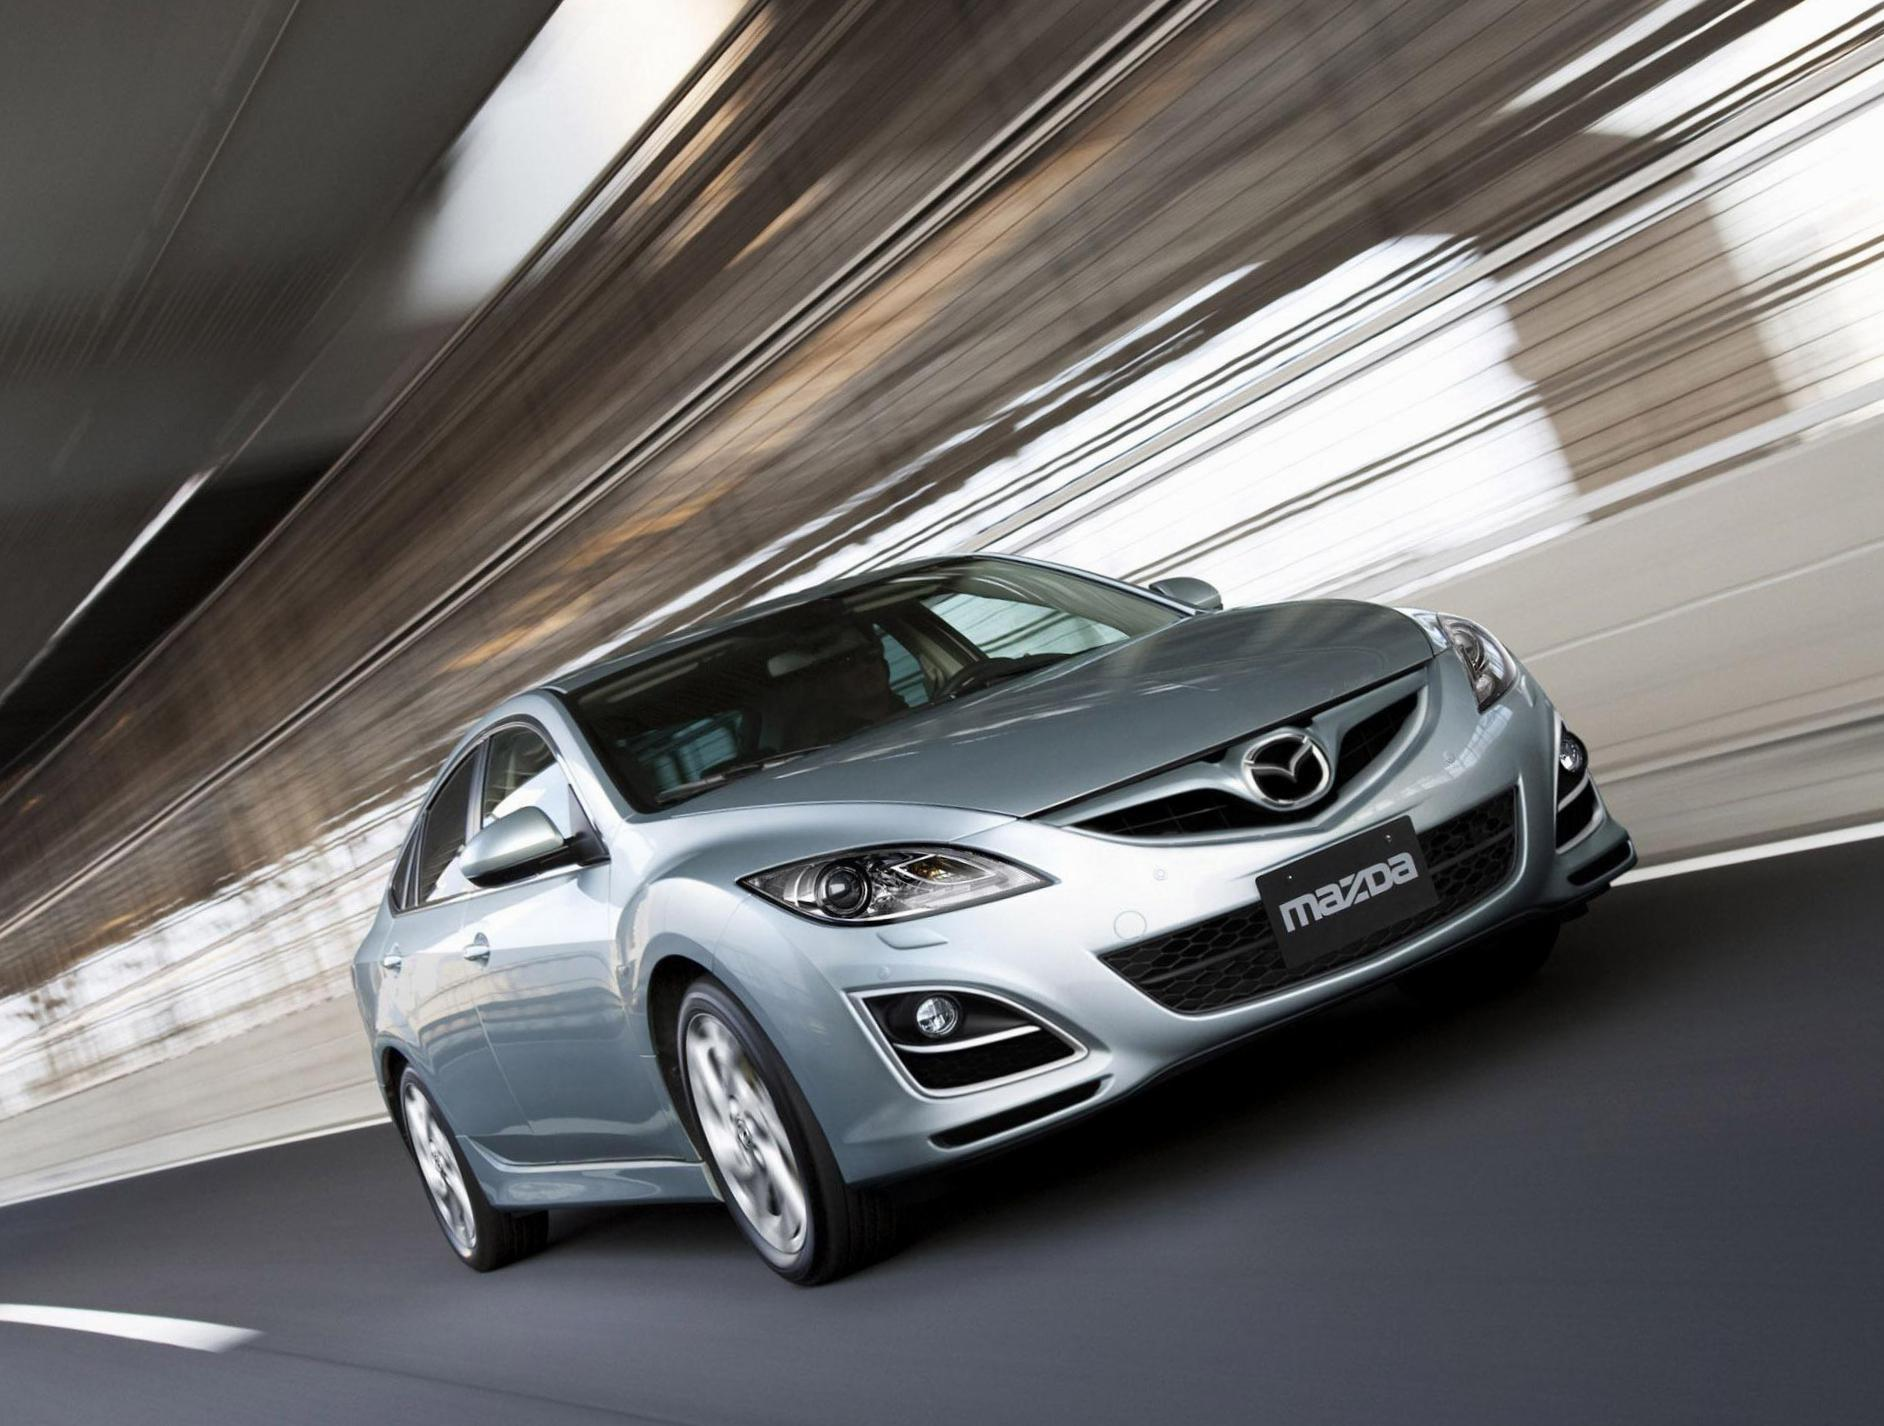 6 Hatchback Mazda Specifications 2011